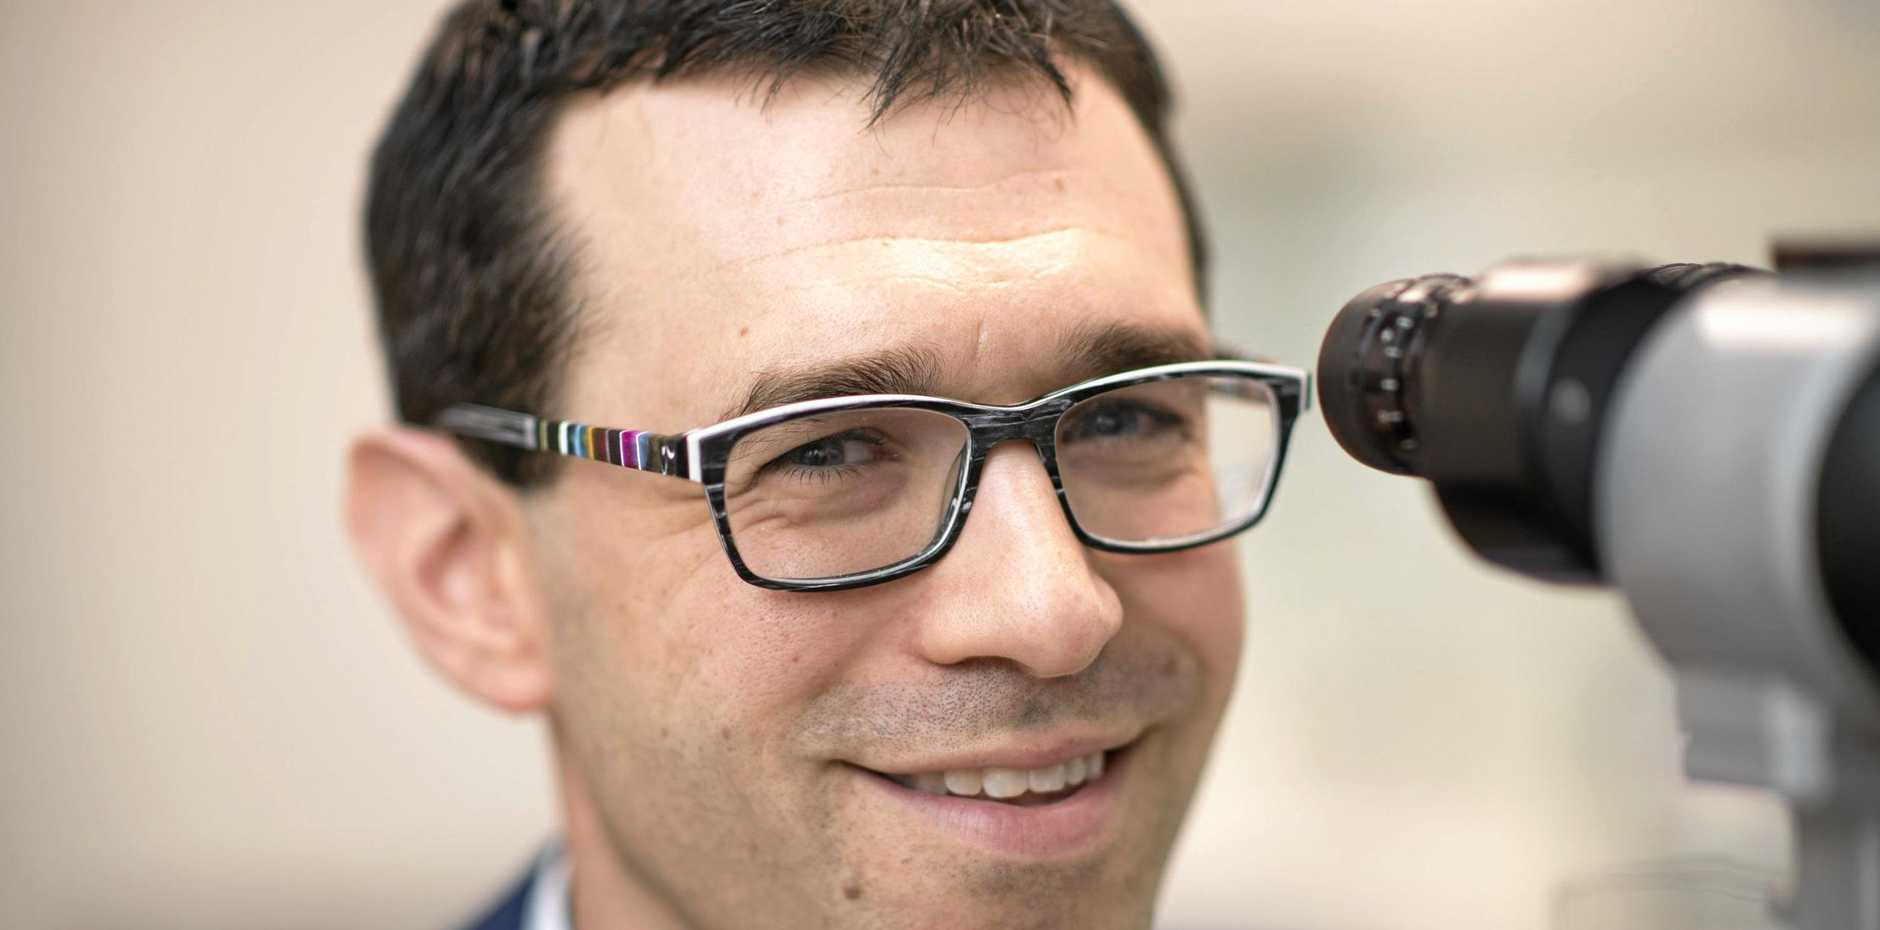 EYE HEALTH: Opthamologist Dr Simon Skalicky suggests regular testing as a way to beat glaucoma.